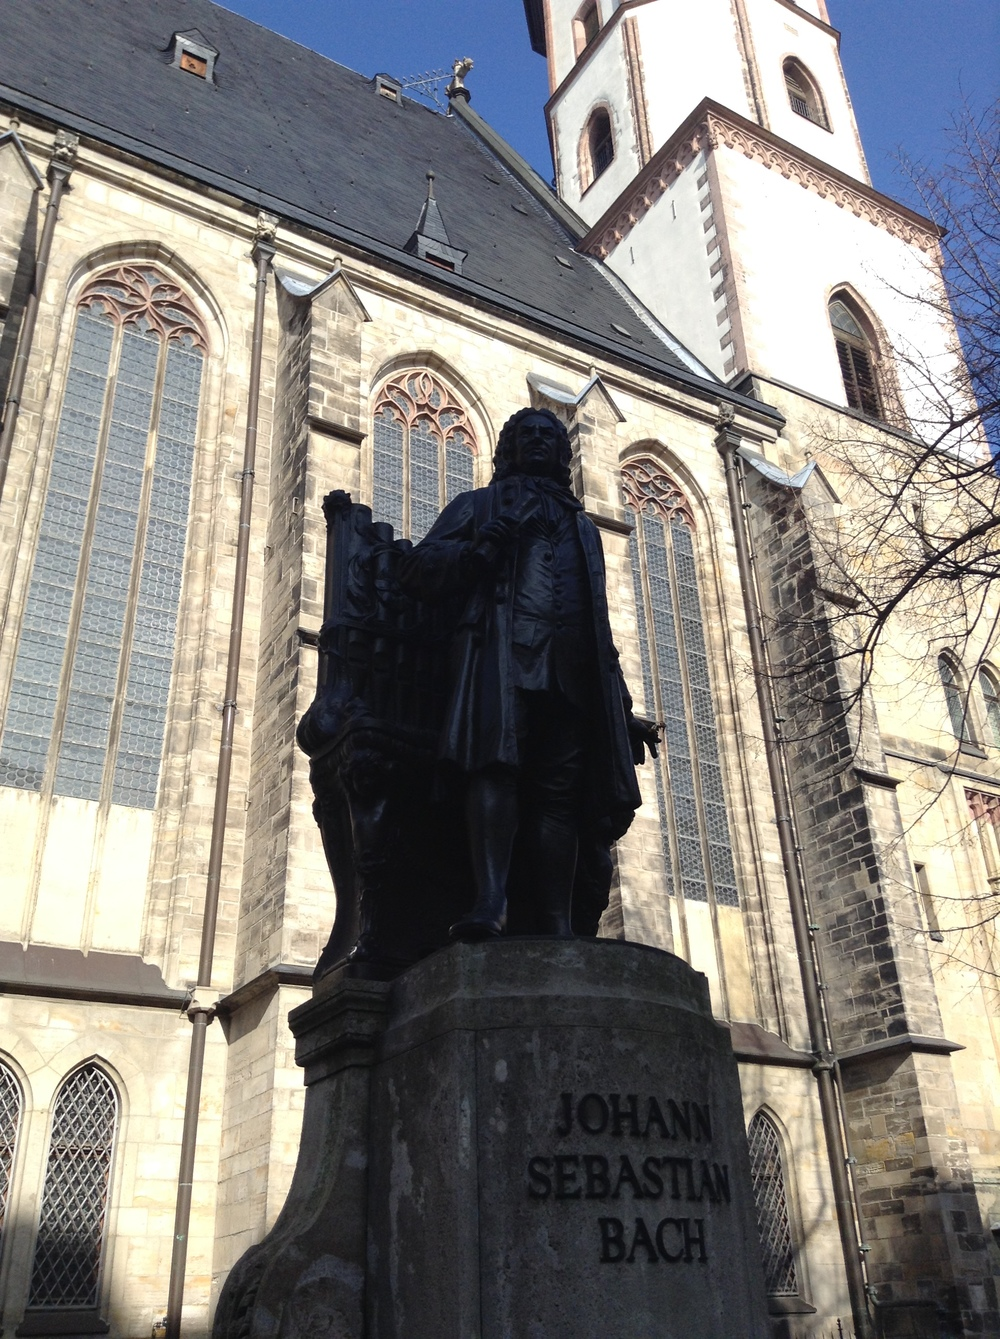 Bach's statue and the Thomaskirche